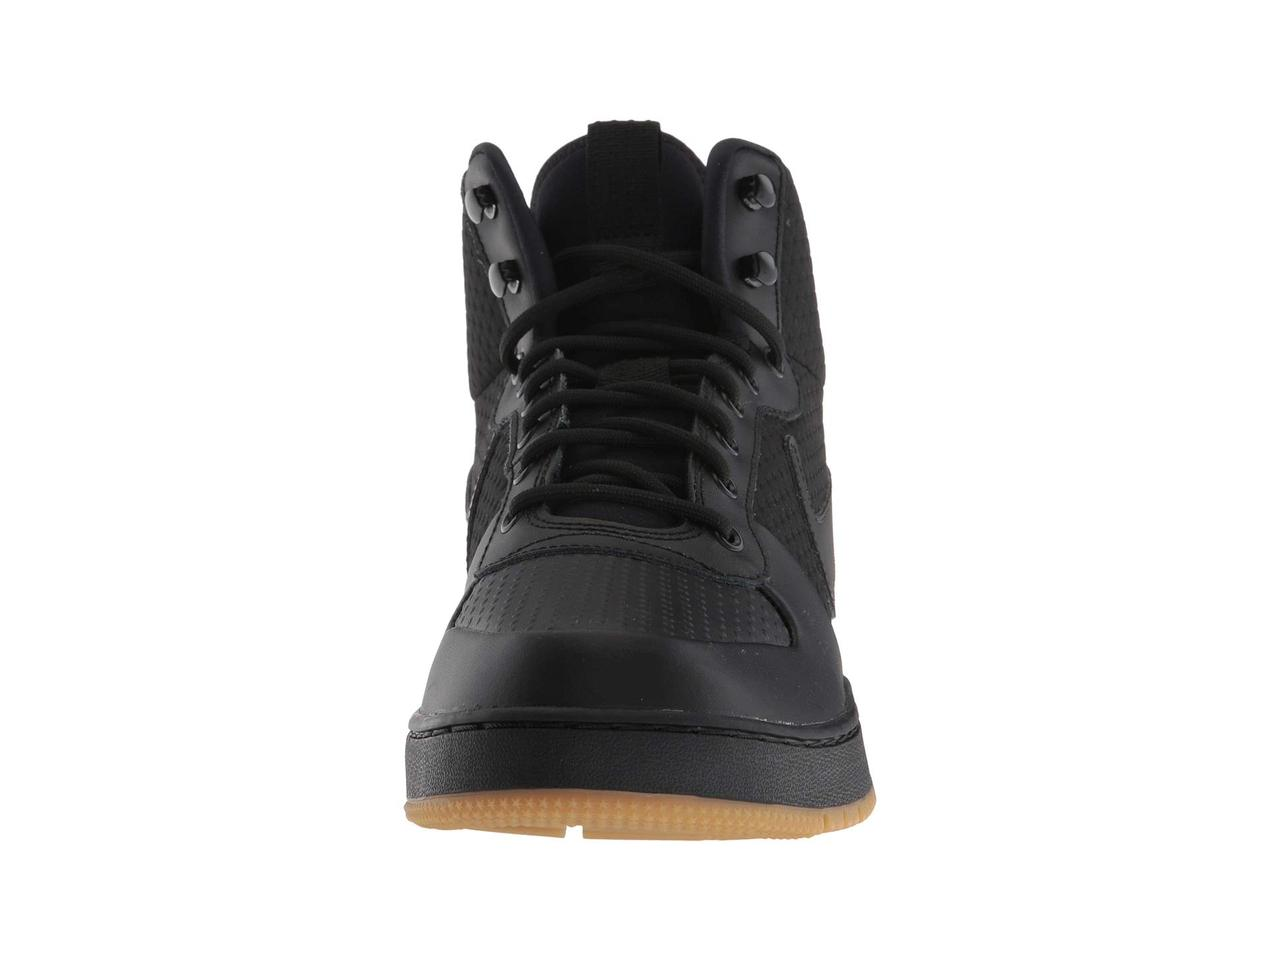 best website d2673 45d92 Кроссовки Кеды (Оригинал) Nike Ebernon Mid Winter Black Black Gum Light ...